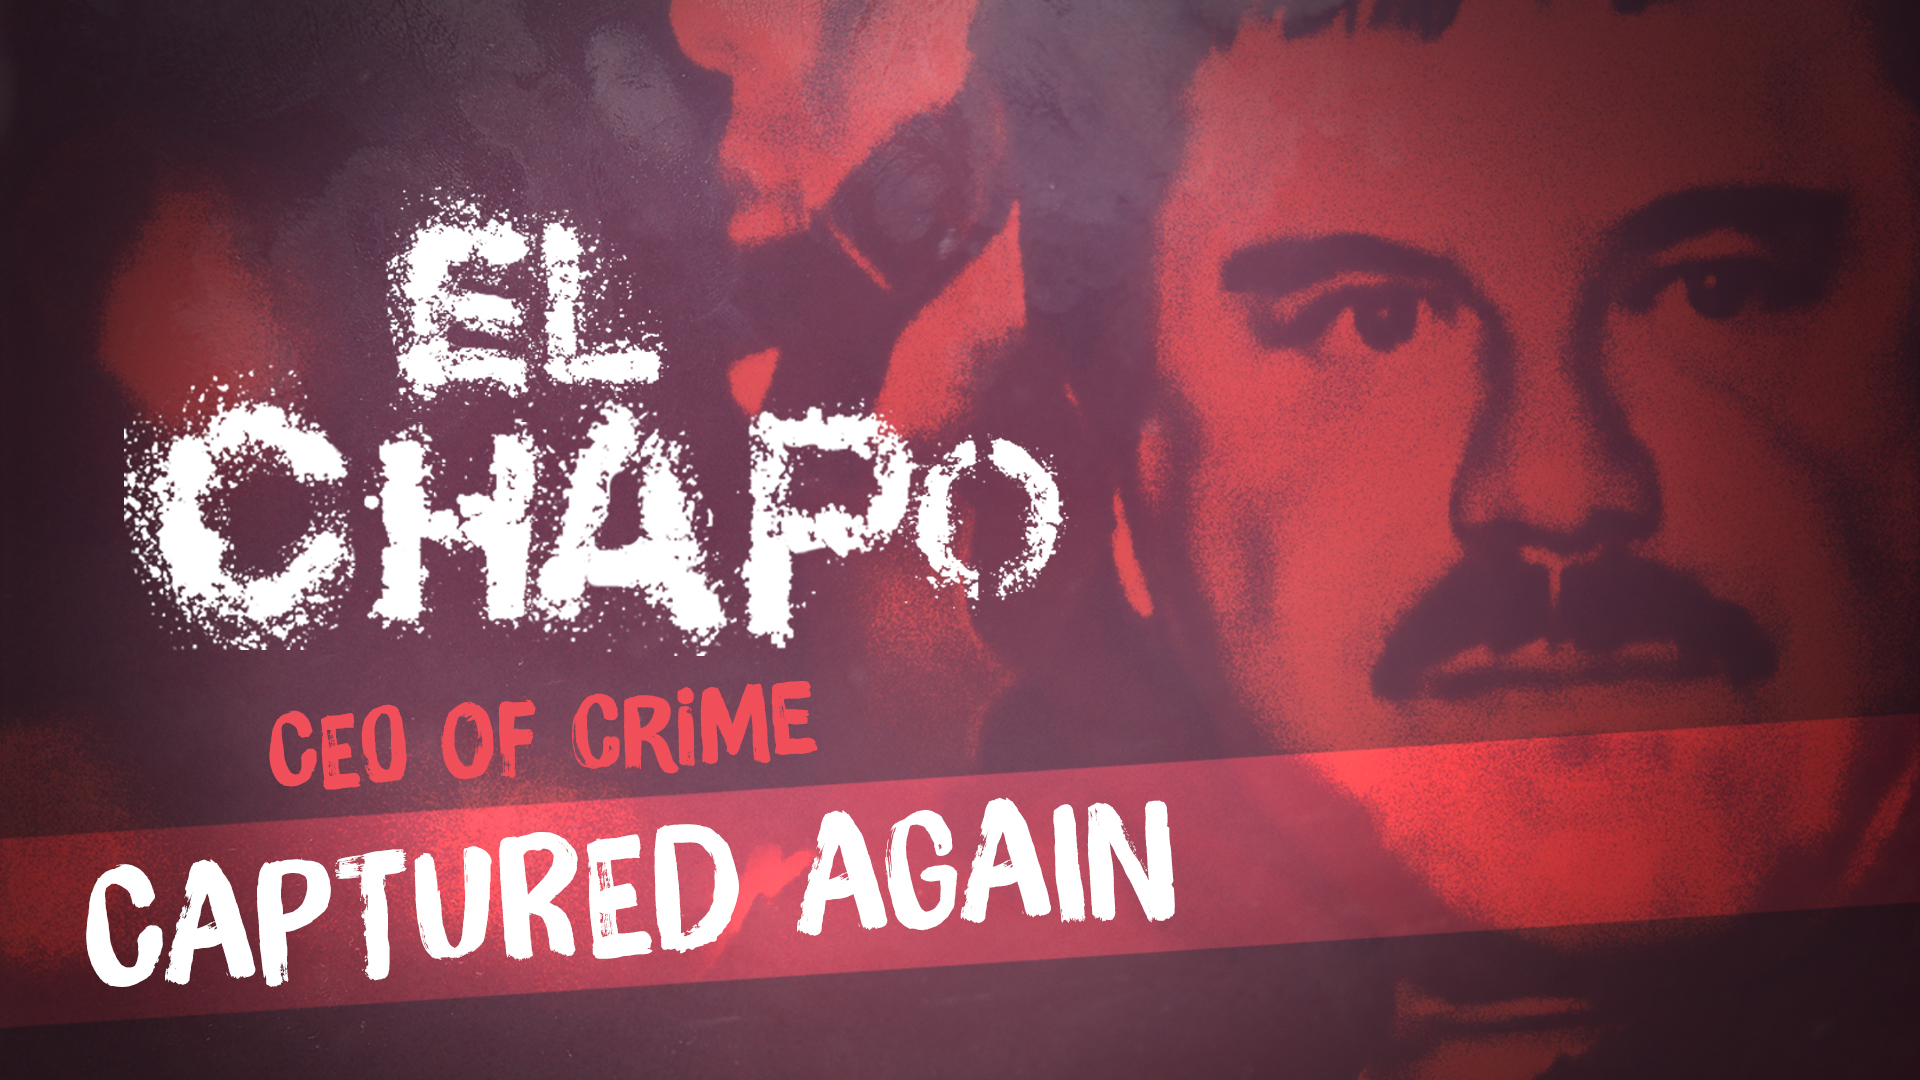 El Chapo: CEO of Crime Captured Again